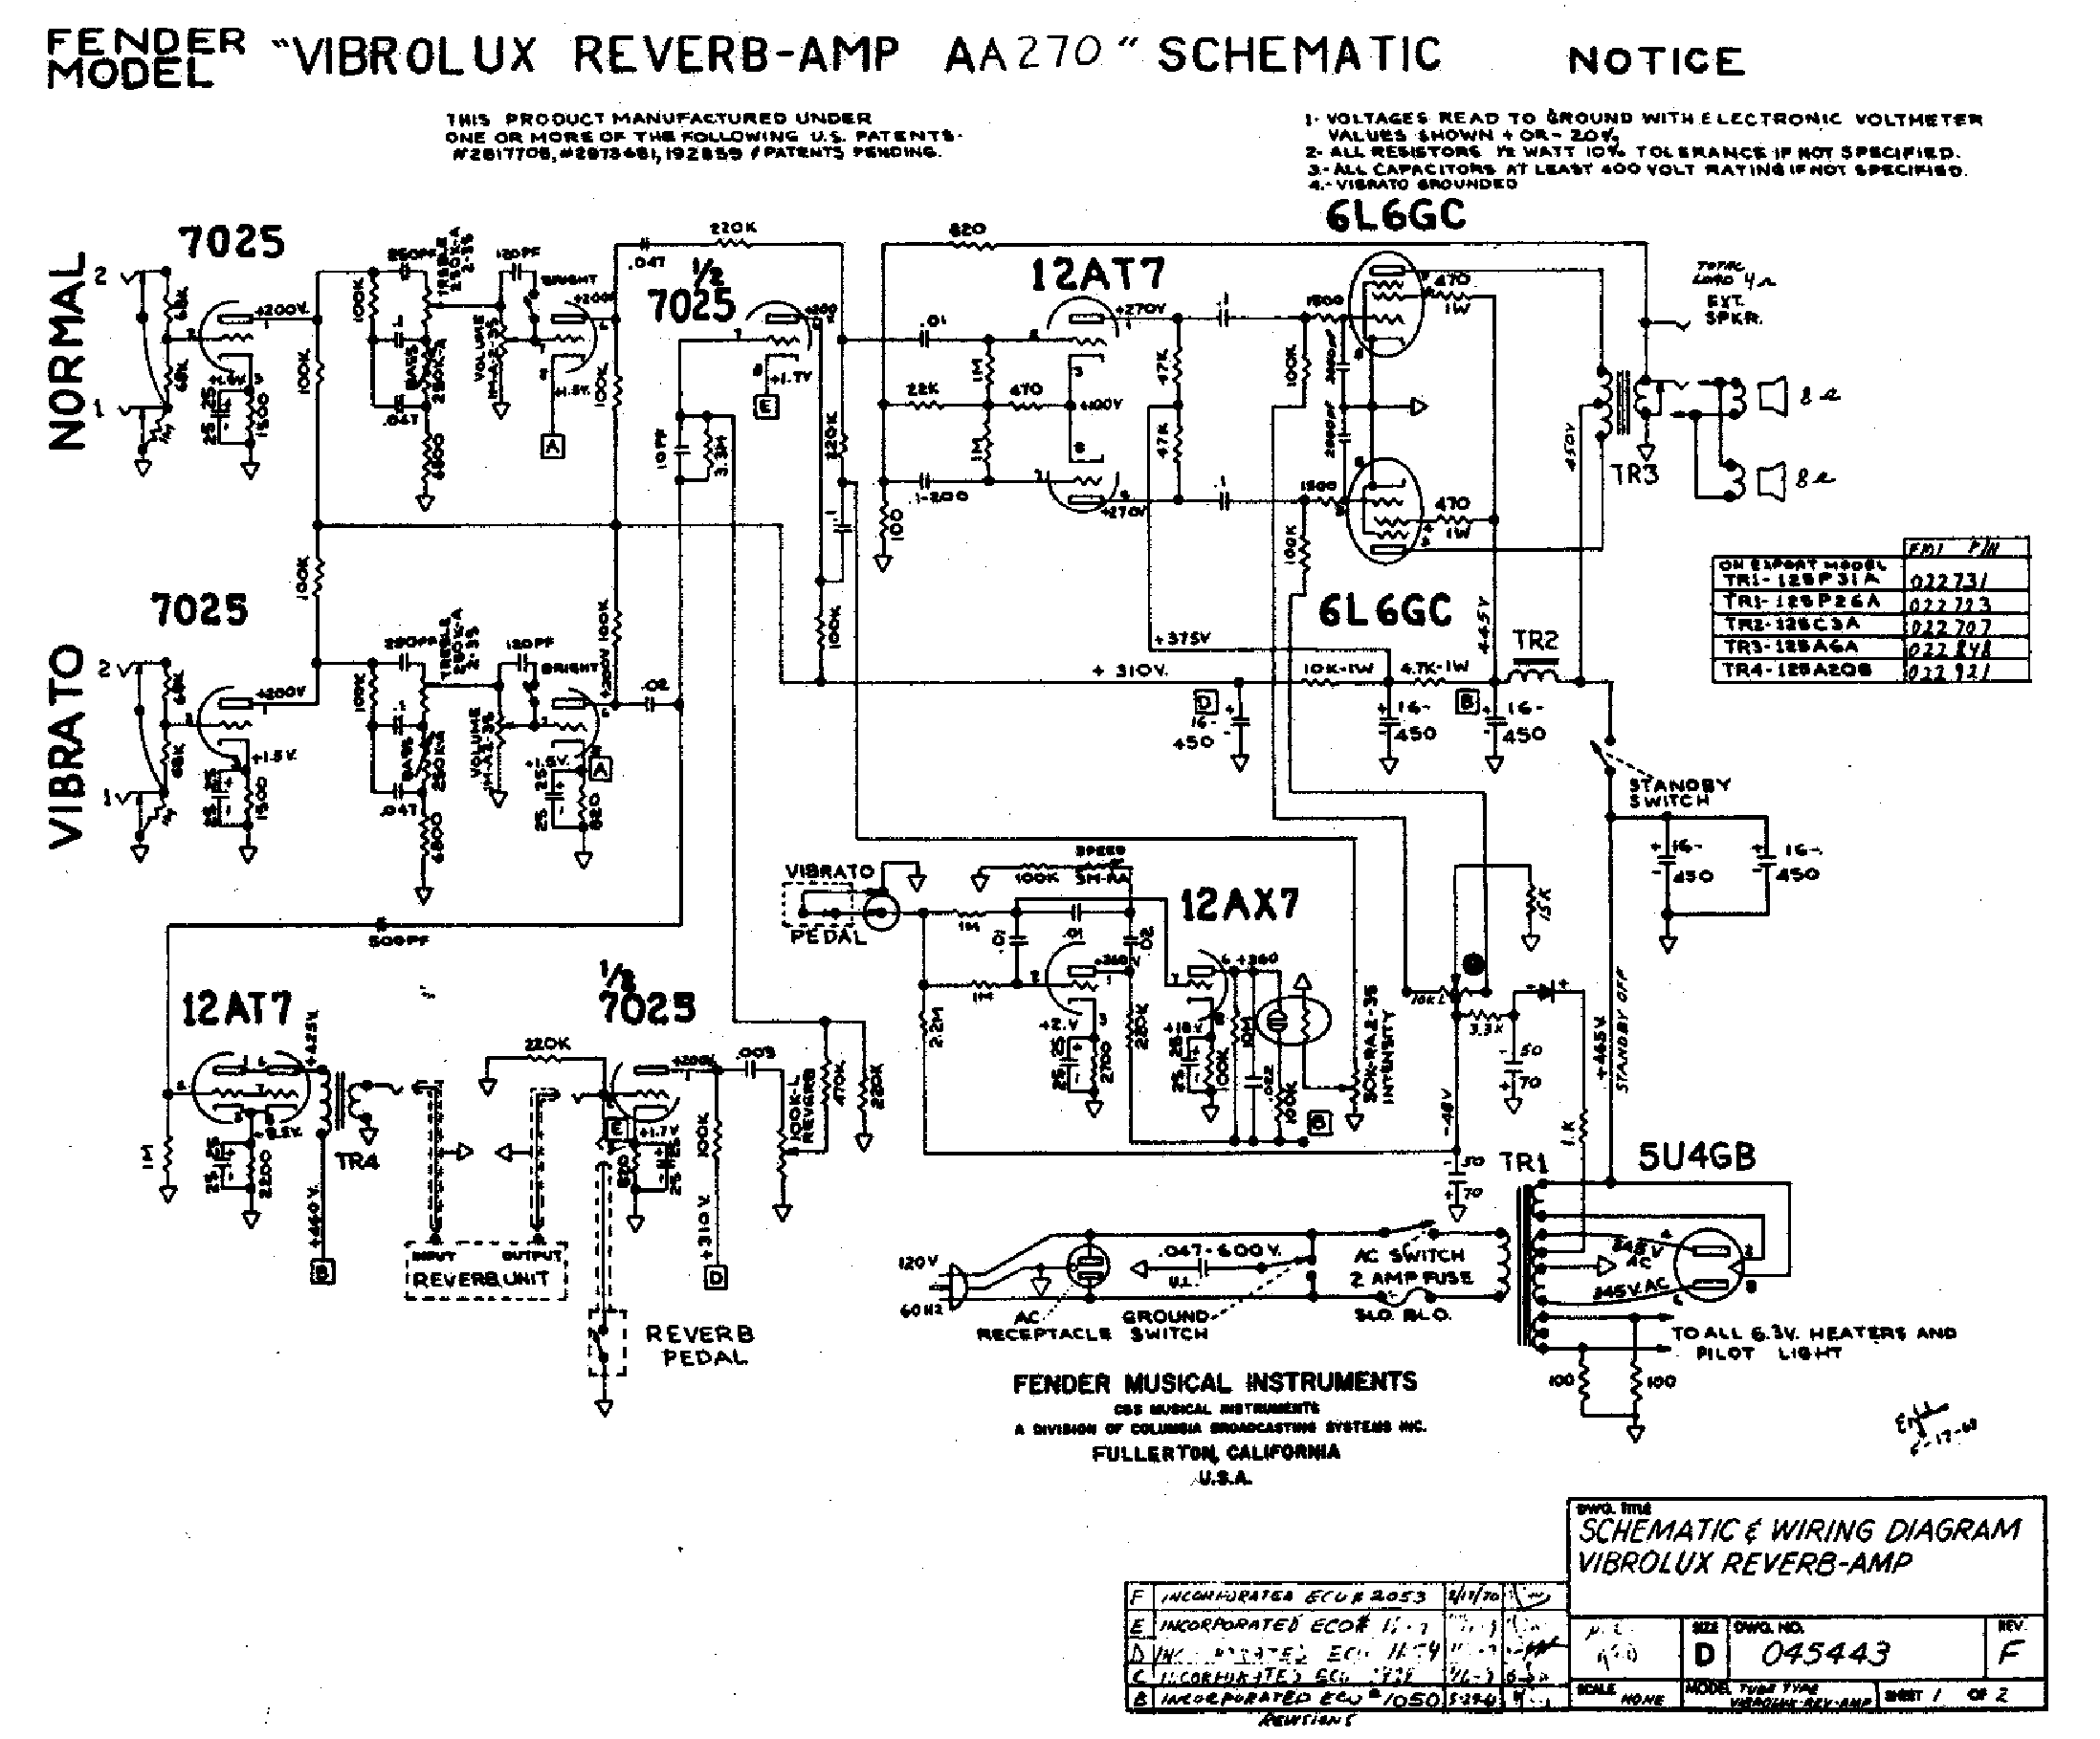 Vibrolux Reverb Schematic - Wiring Diagram Local on super reverb schematic, one-line diagram, circuit diagram, princeton reverb schematic, peavey reverb schematic, technical drawing, tube map, functional flow block diagram, fender bandmaster ab763 schematic, deluxe reverb schematic, piping and instrumentation diagram, fender reverb schematic, vibrolux reverb schematic, twin reverb schematic, pro reverb schematic, block diagram,